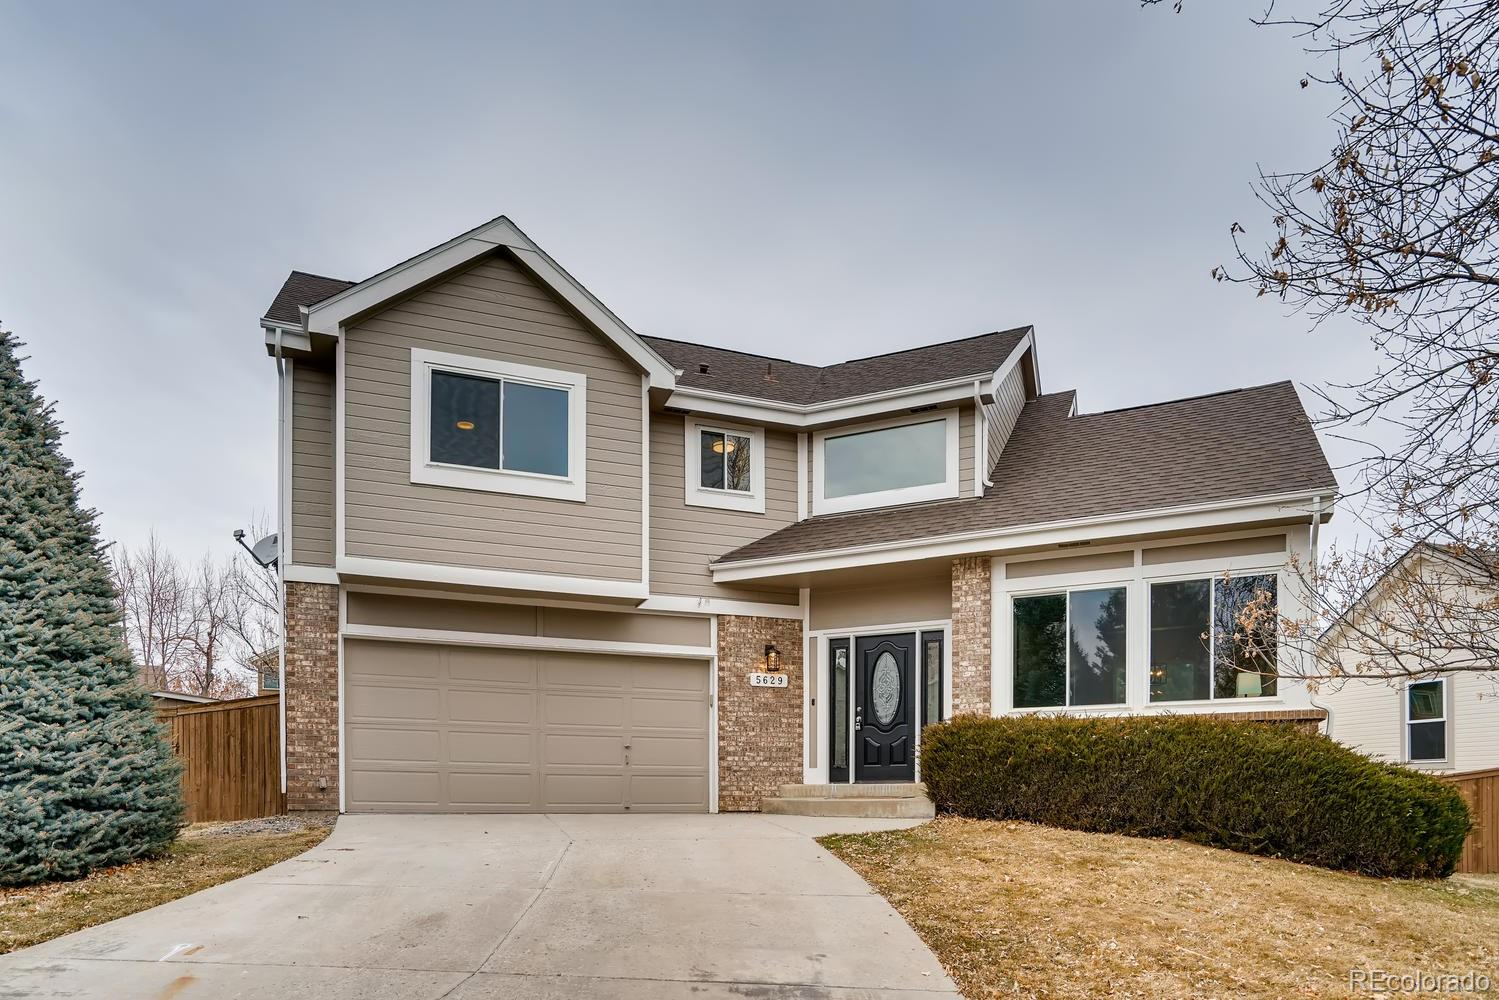 5629 Wickerdale Lane, Highlands Ranch, CO 80130 - Highlands Ranch, CO real estate listing